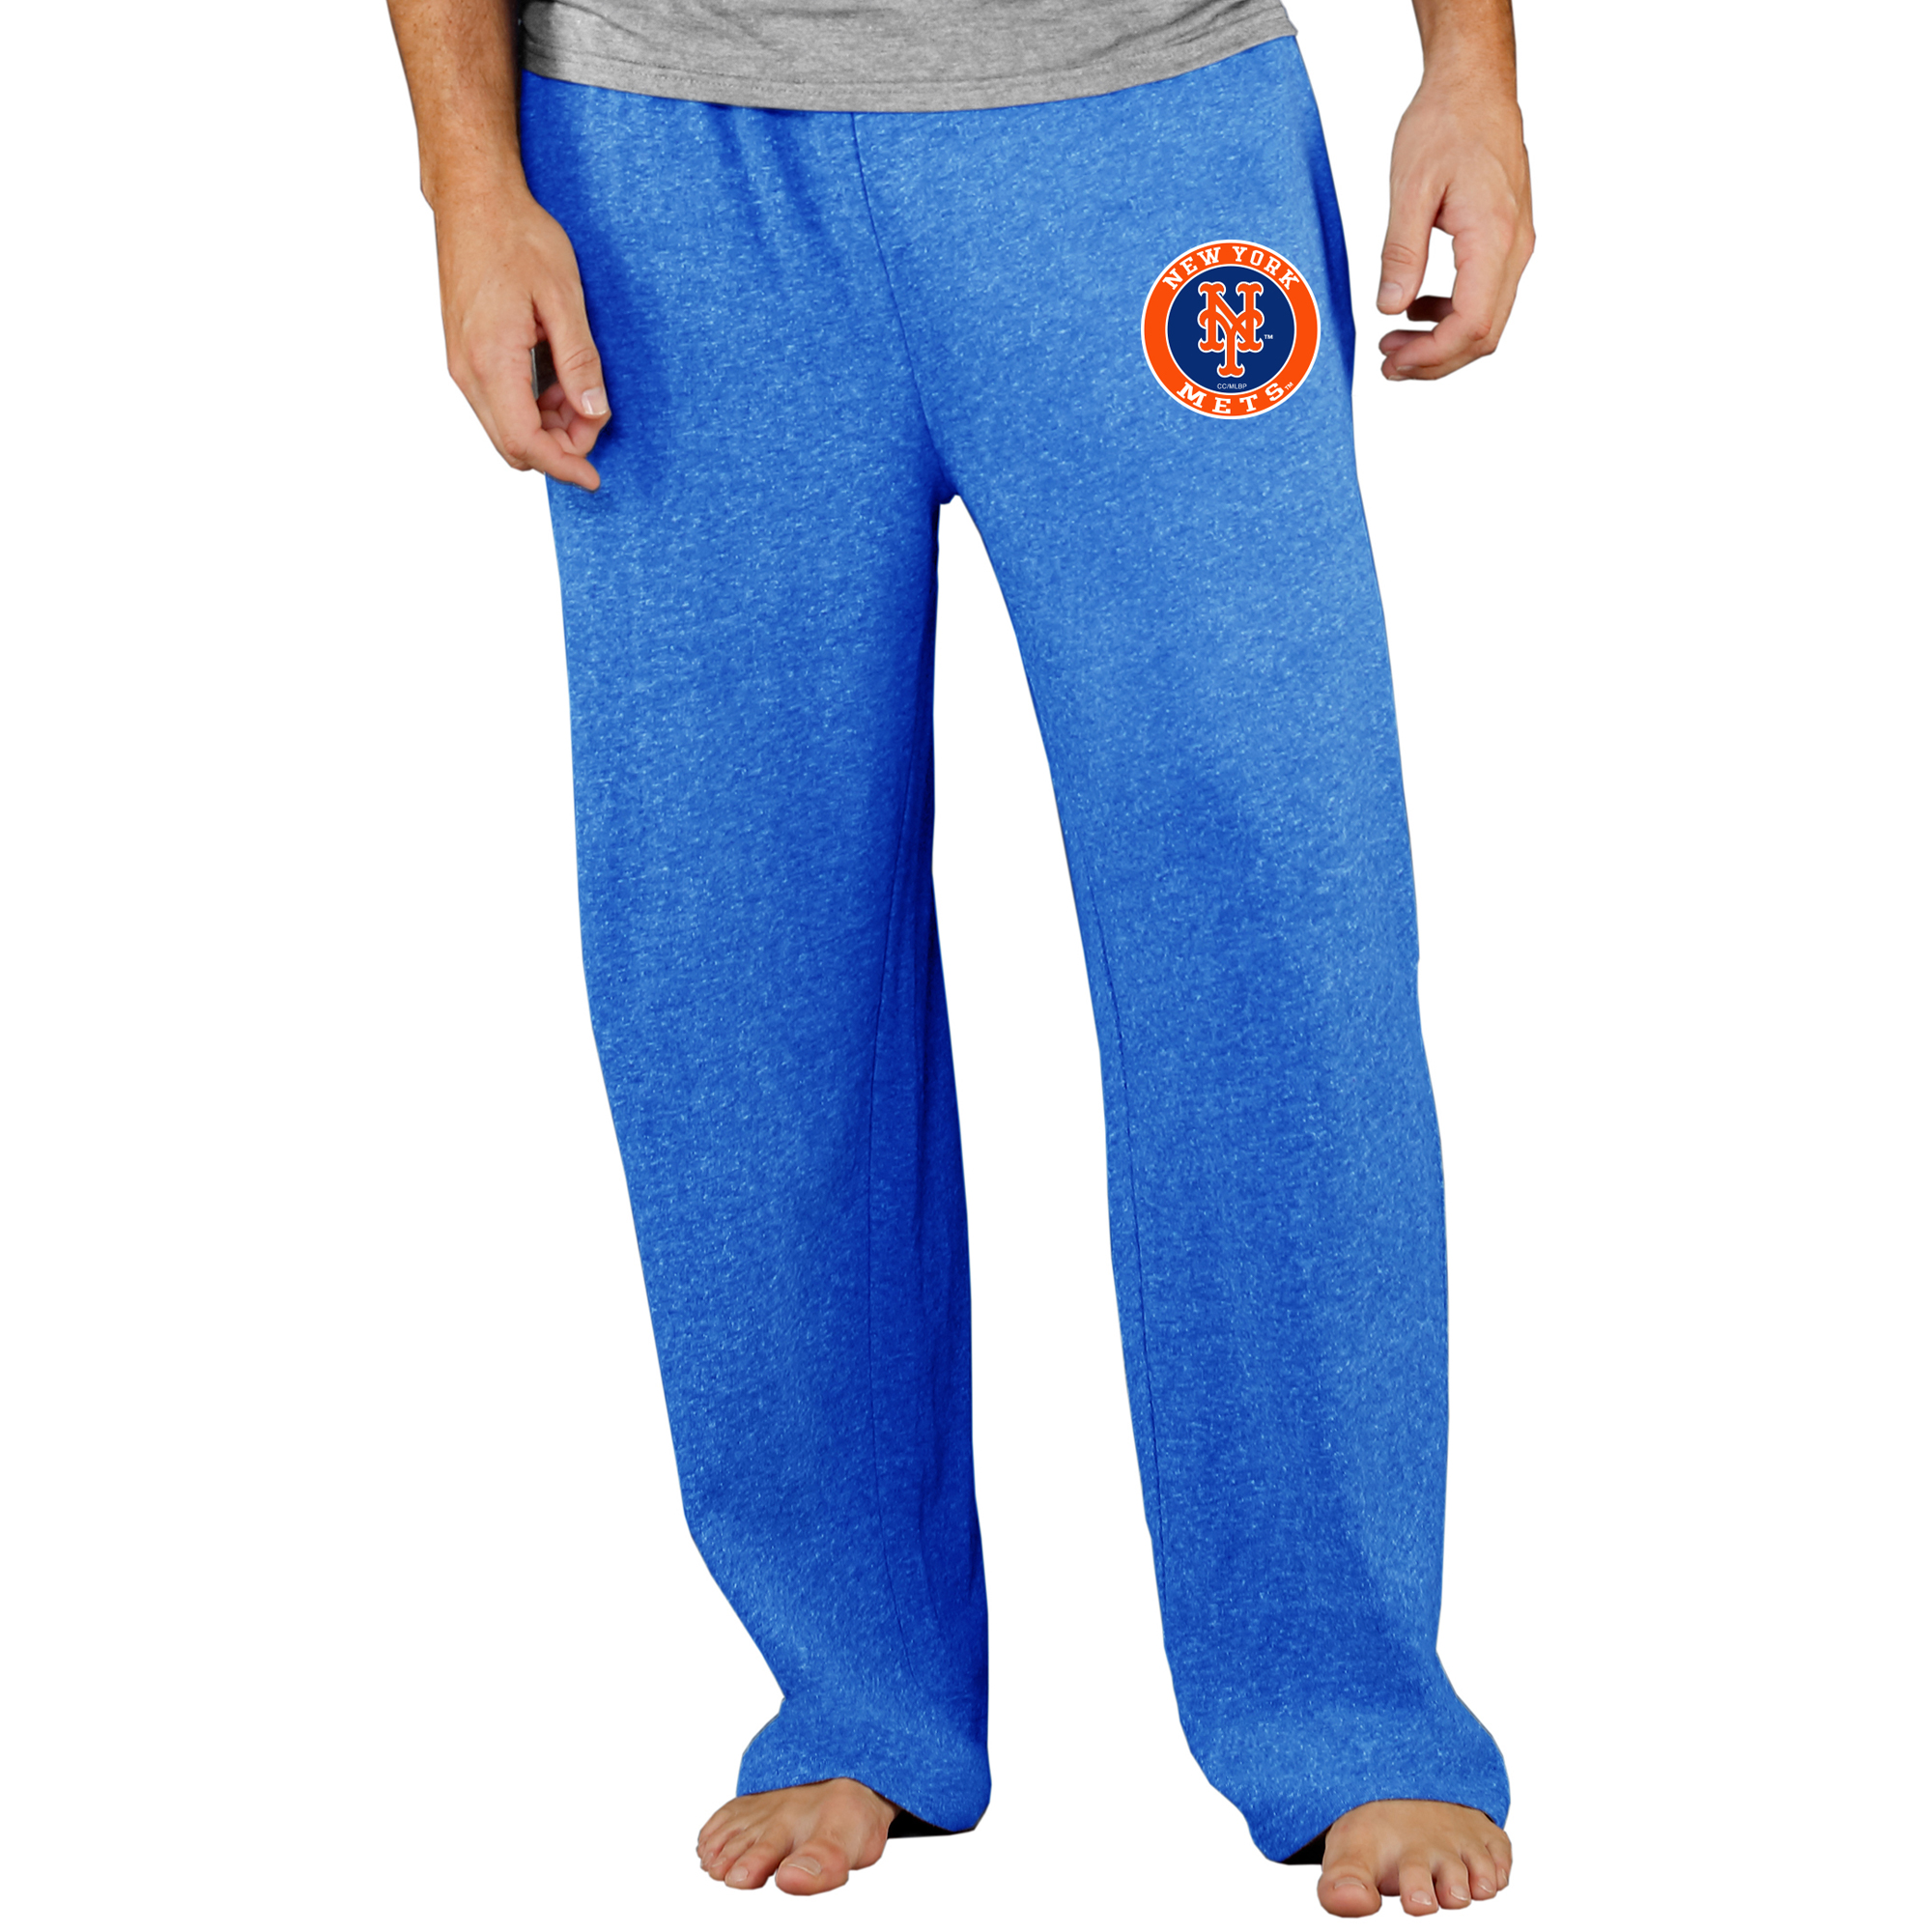 New York Mets Concepts Sport Mainstream Terry Pants - Royal